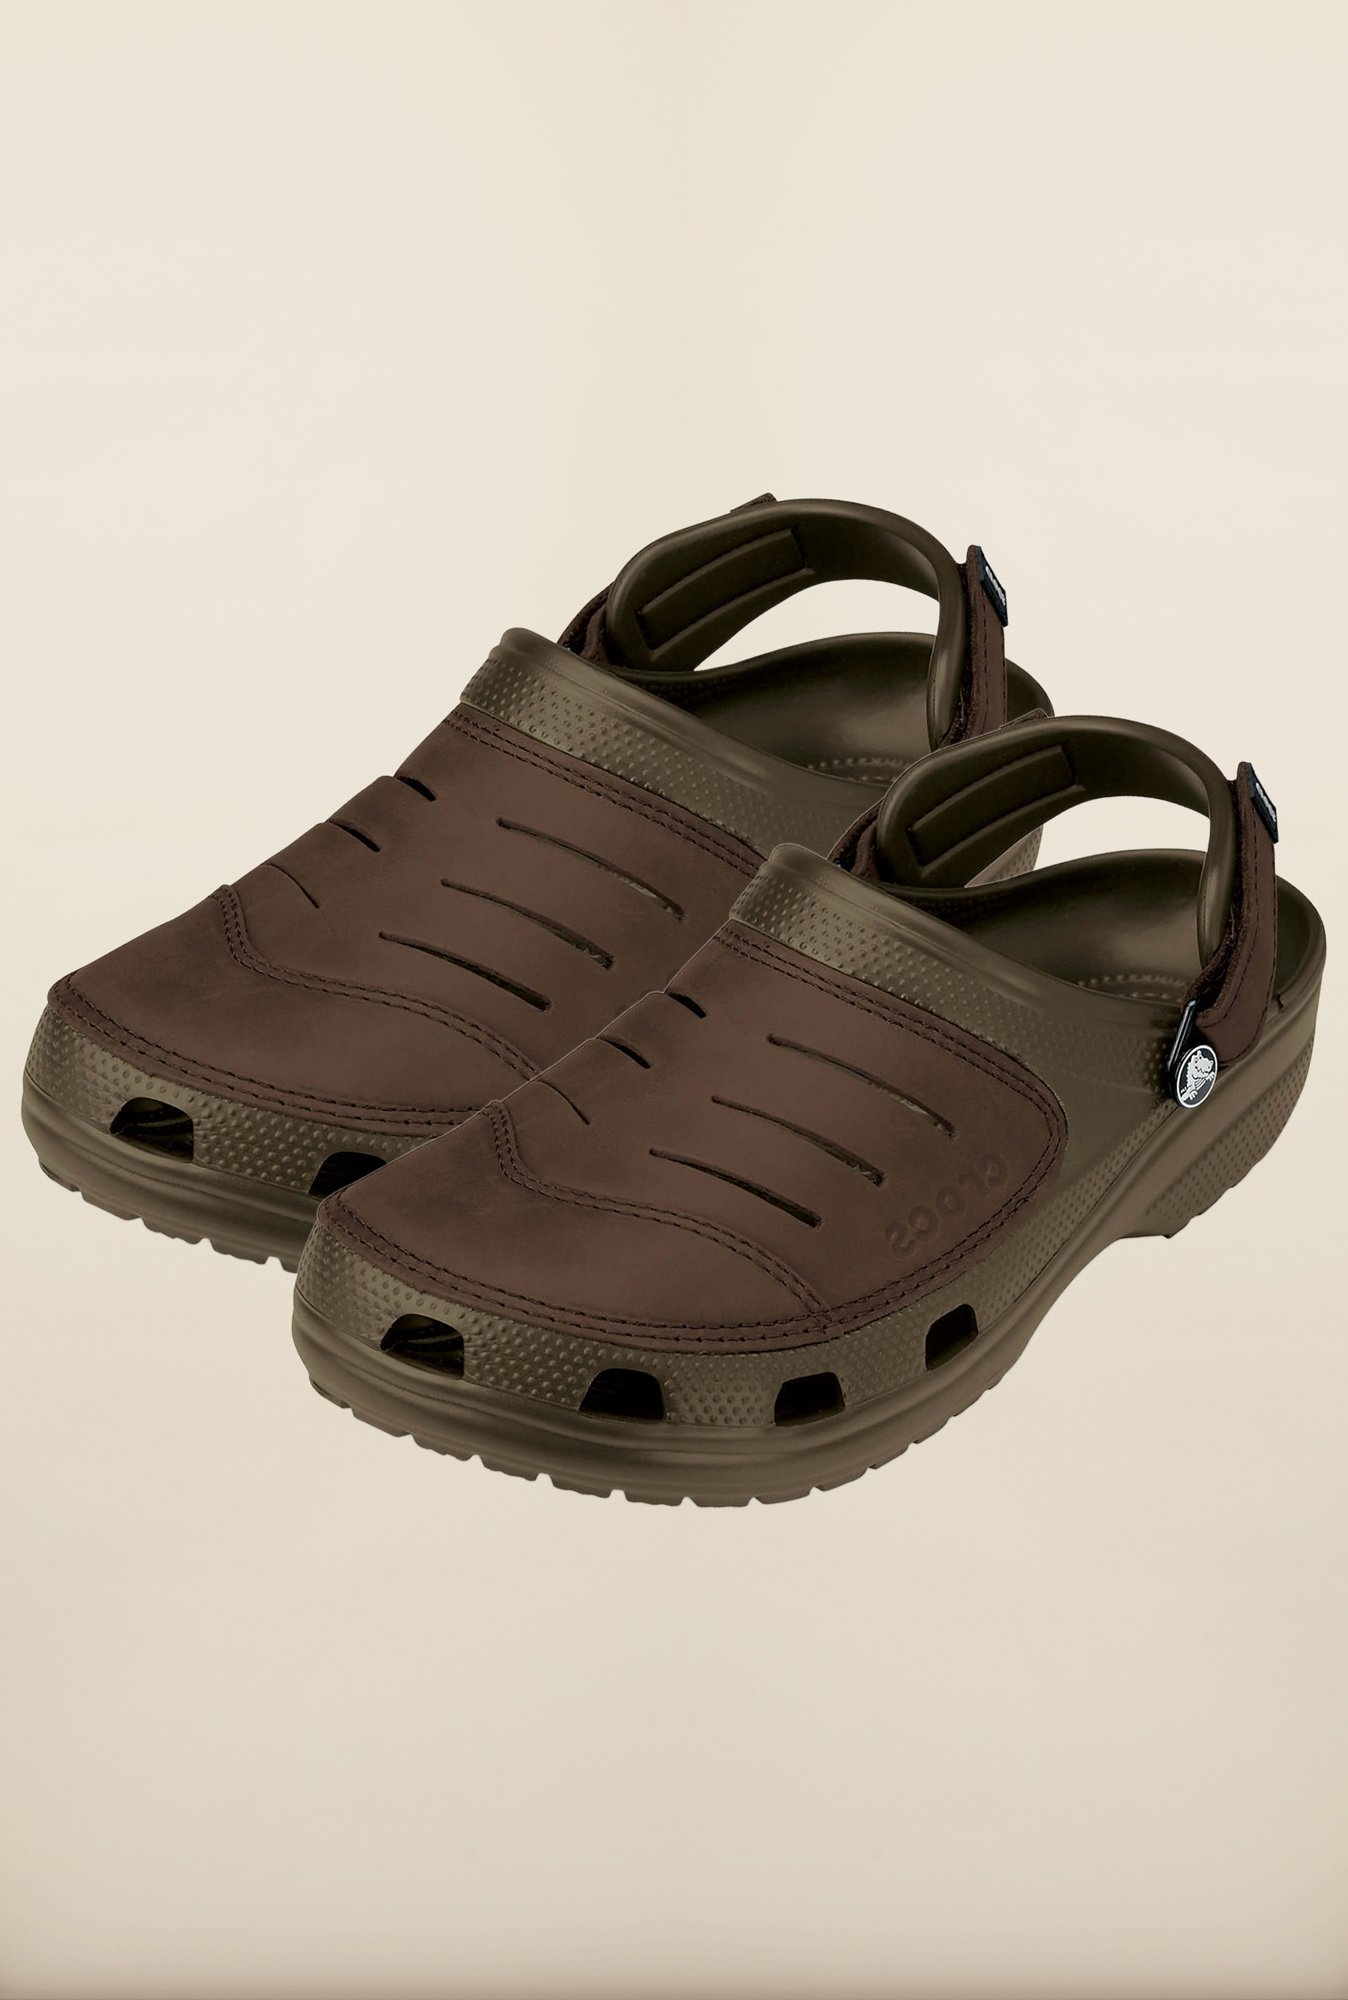 Crocs Yukon Chocolate Clogs